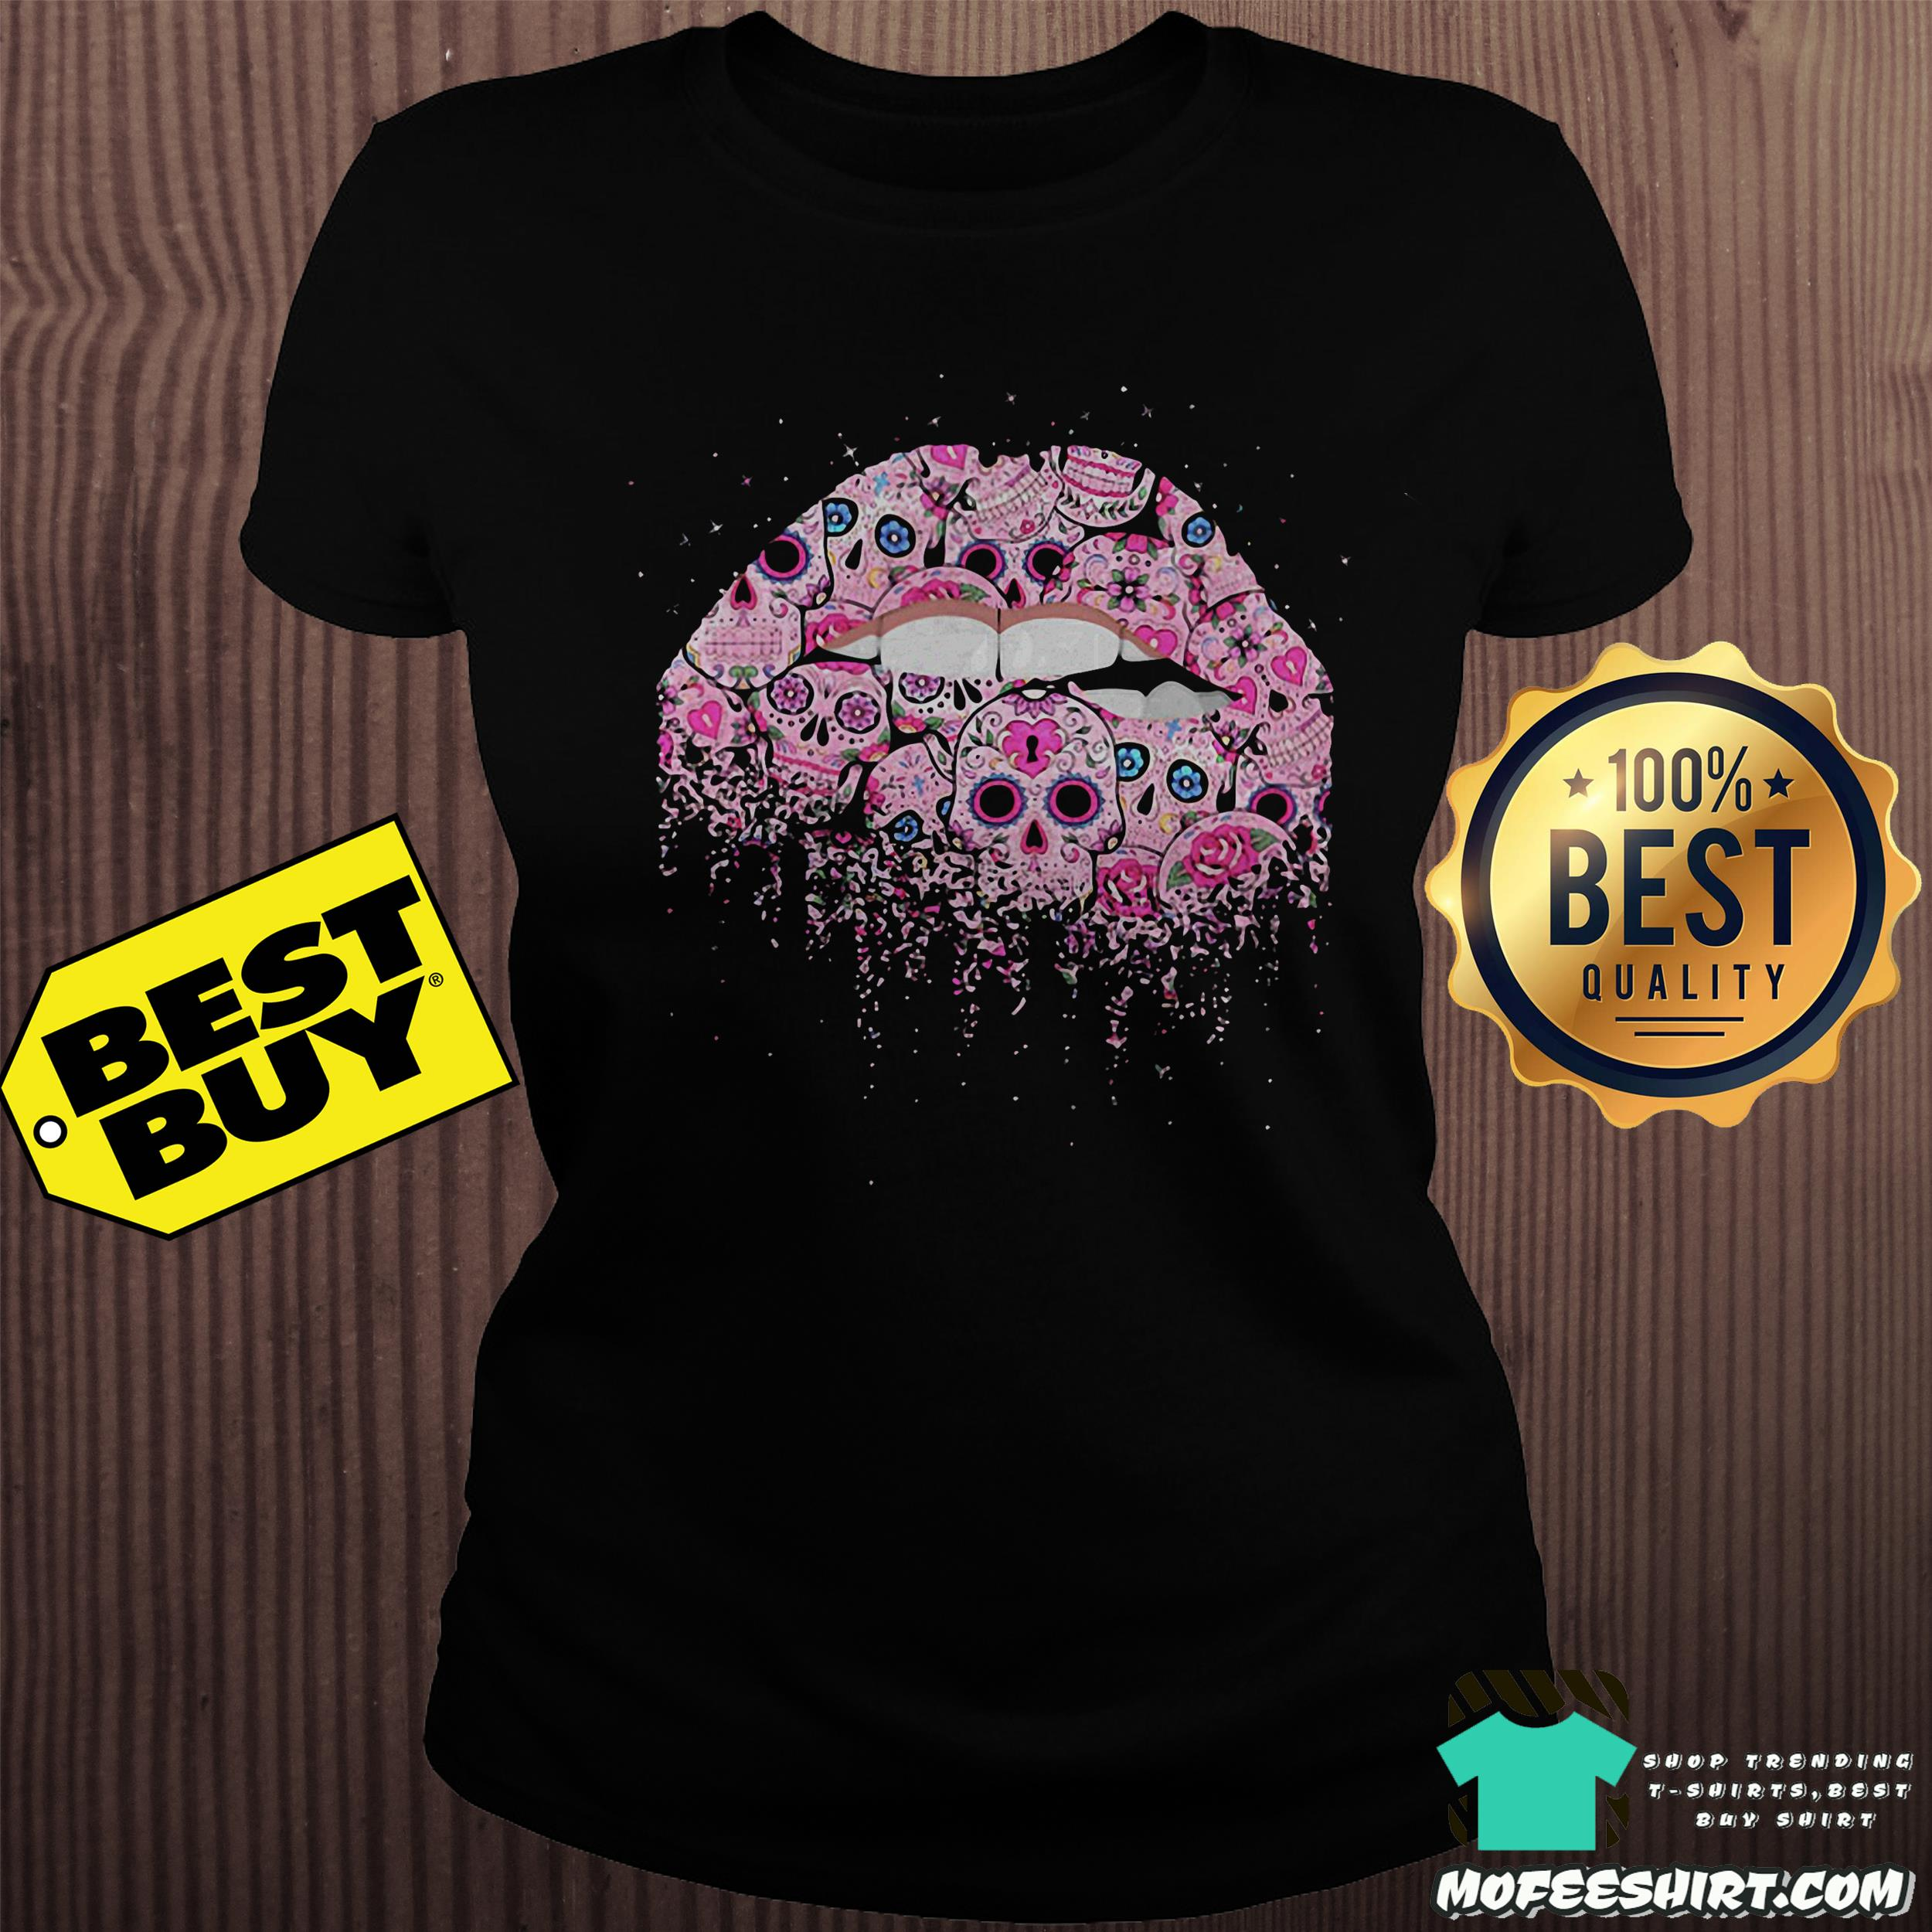 sugar skull lips pink ladies tee - Sugar skull lips pink shirt